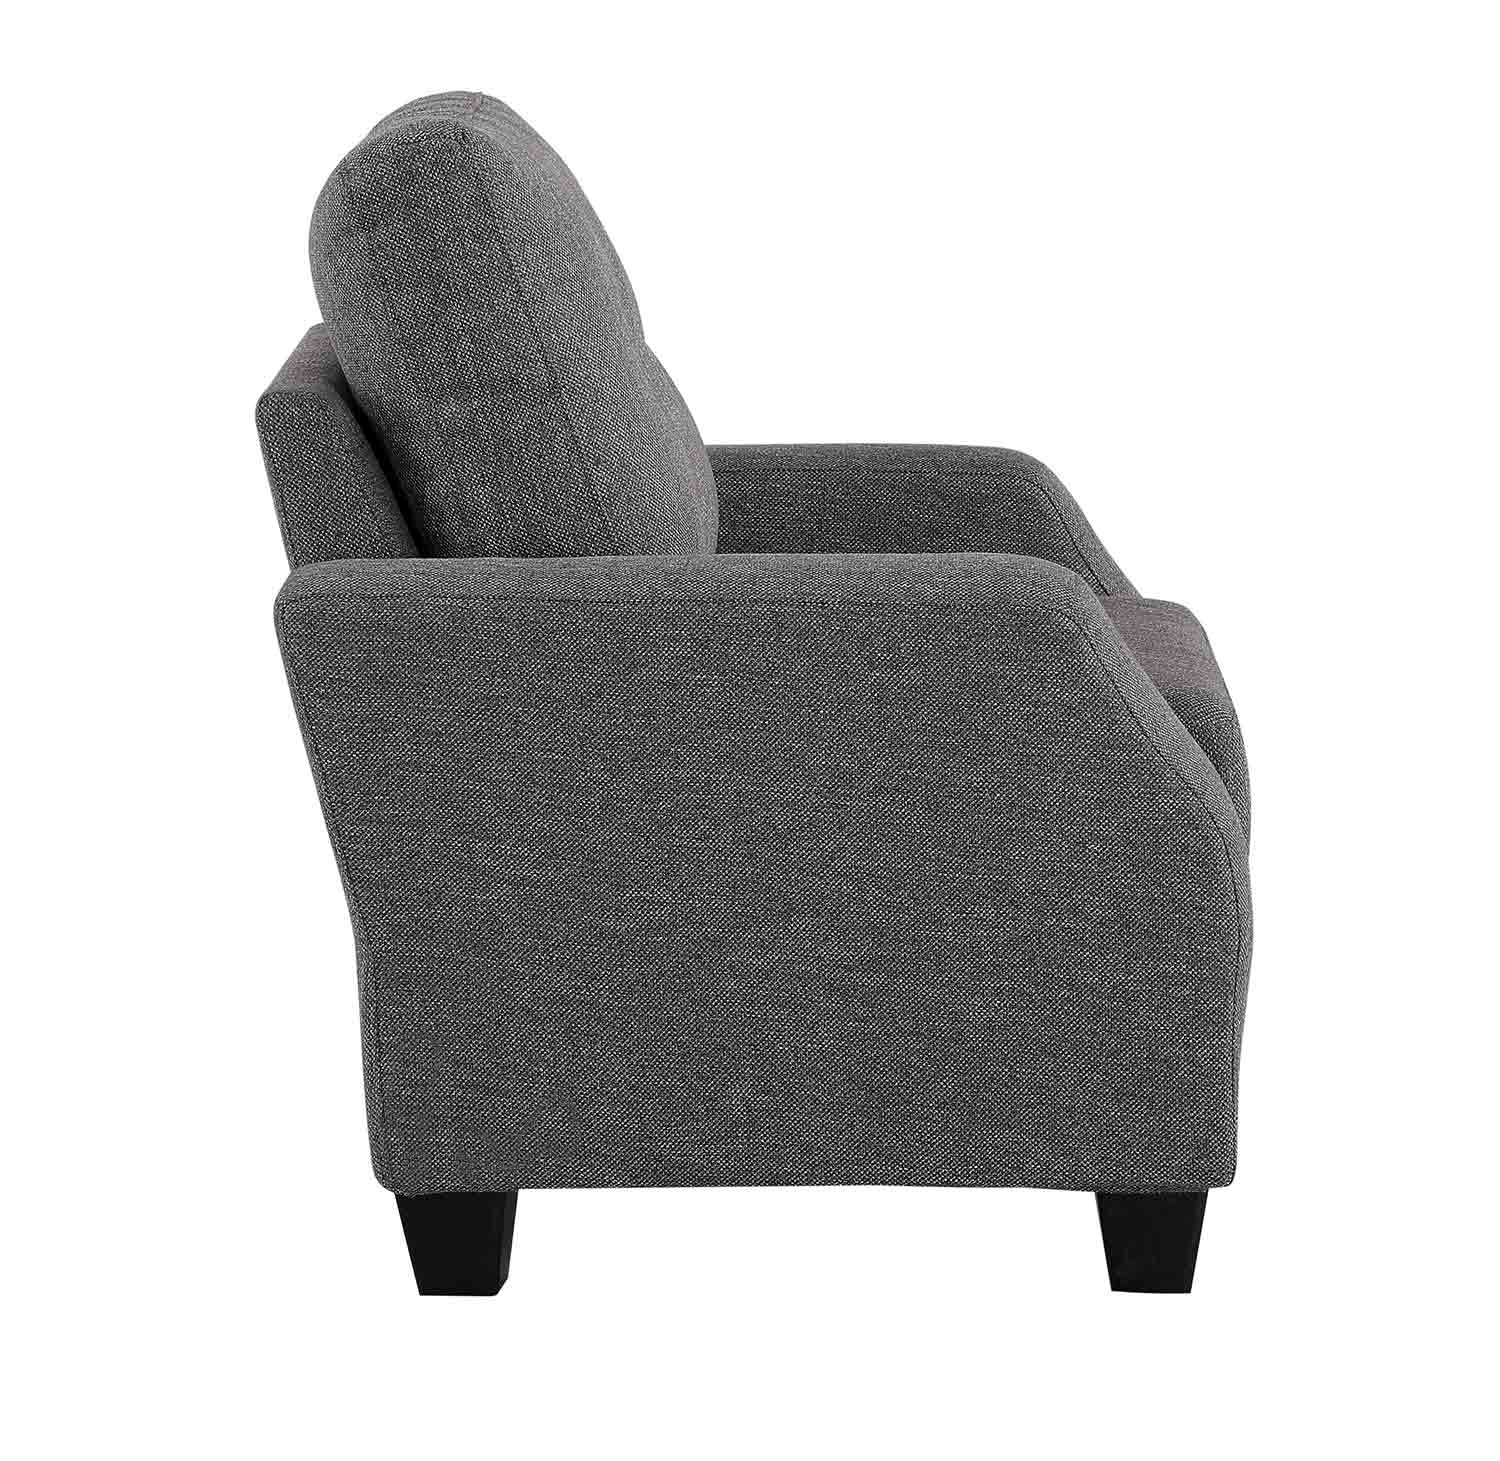 Homelegance Vossel Chair - Gray